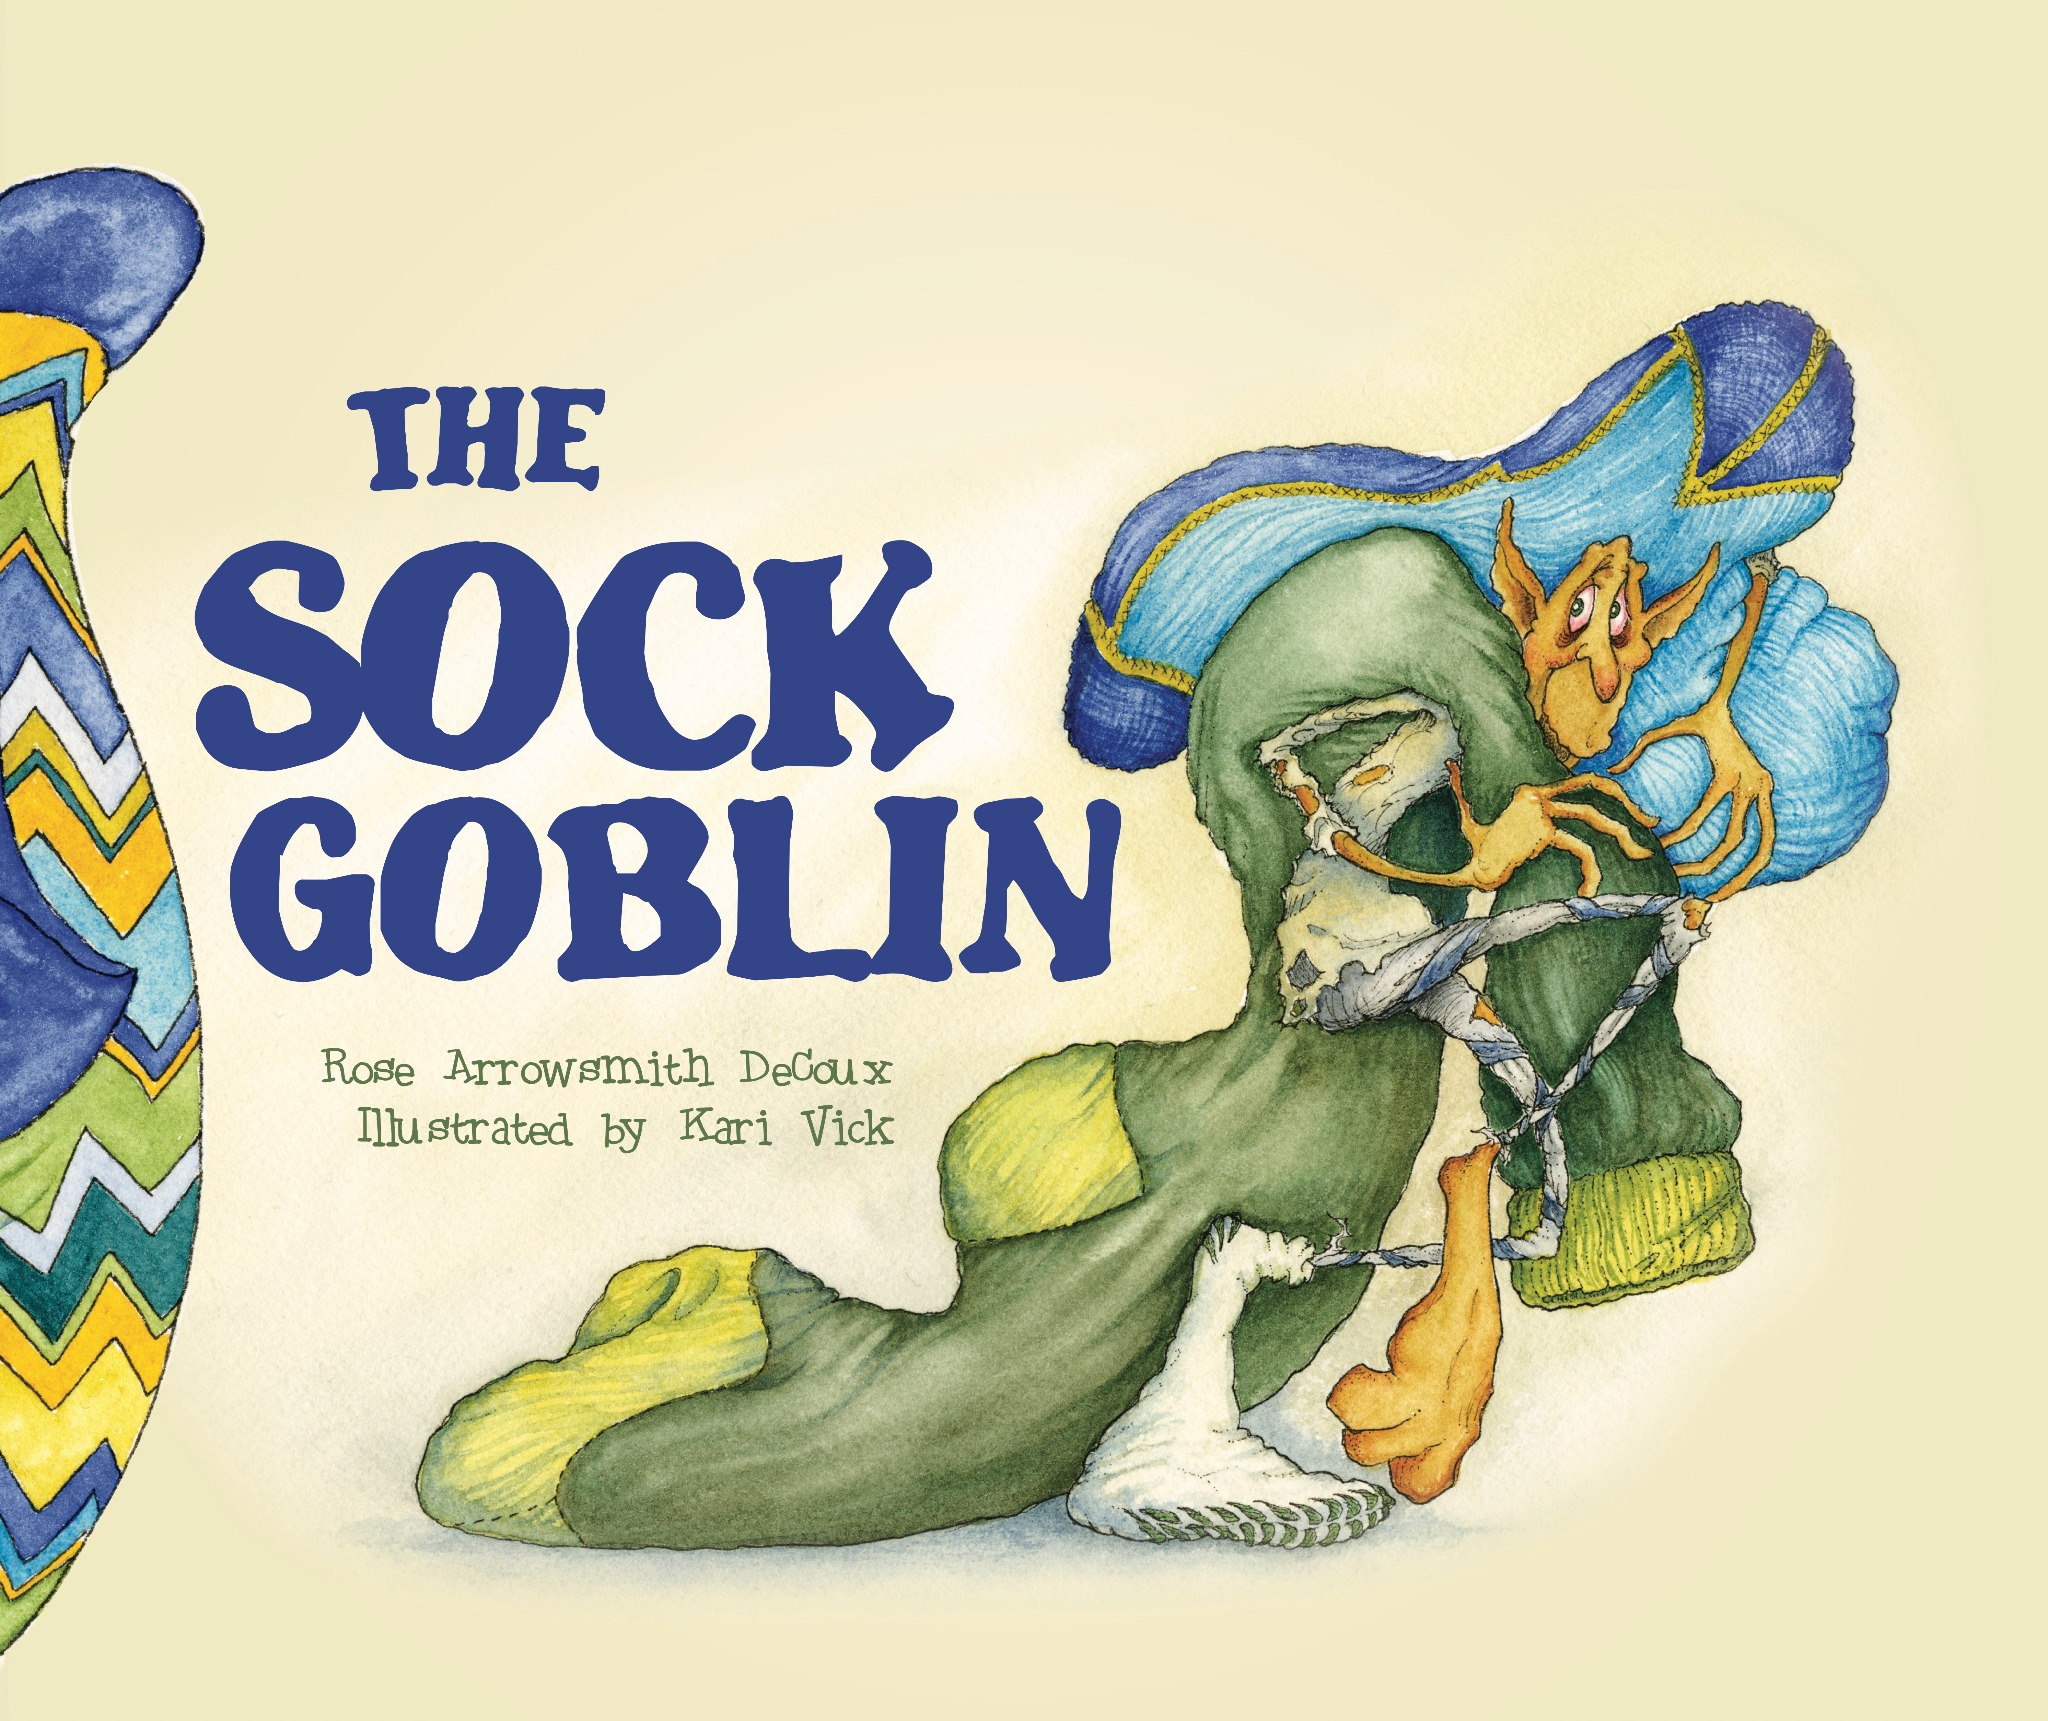 The Sock Goblin [hardcover]